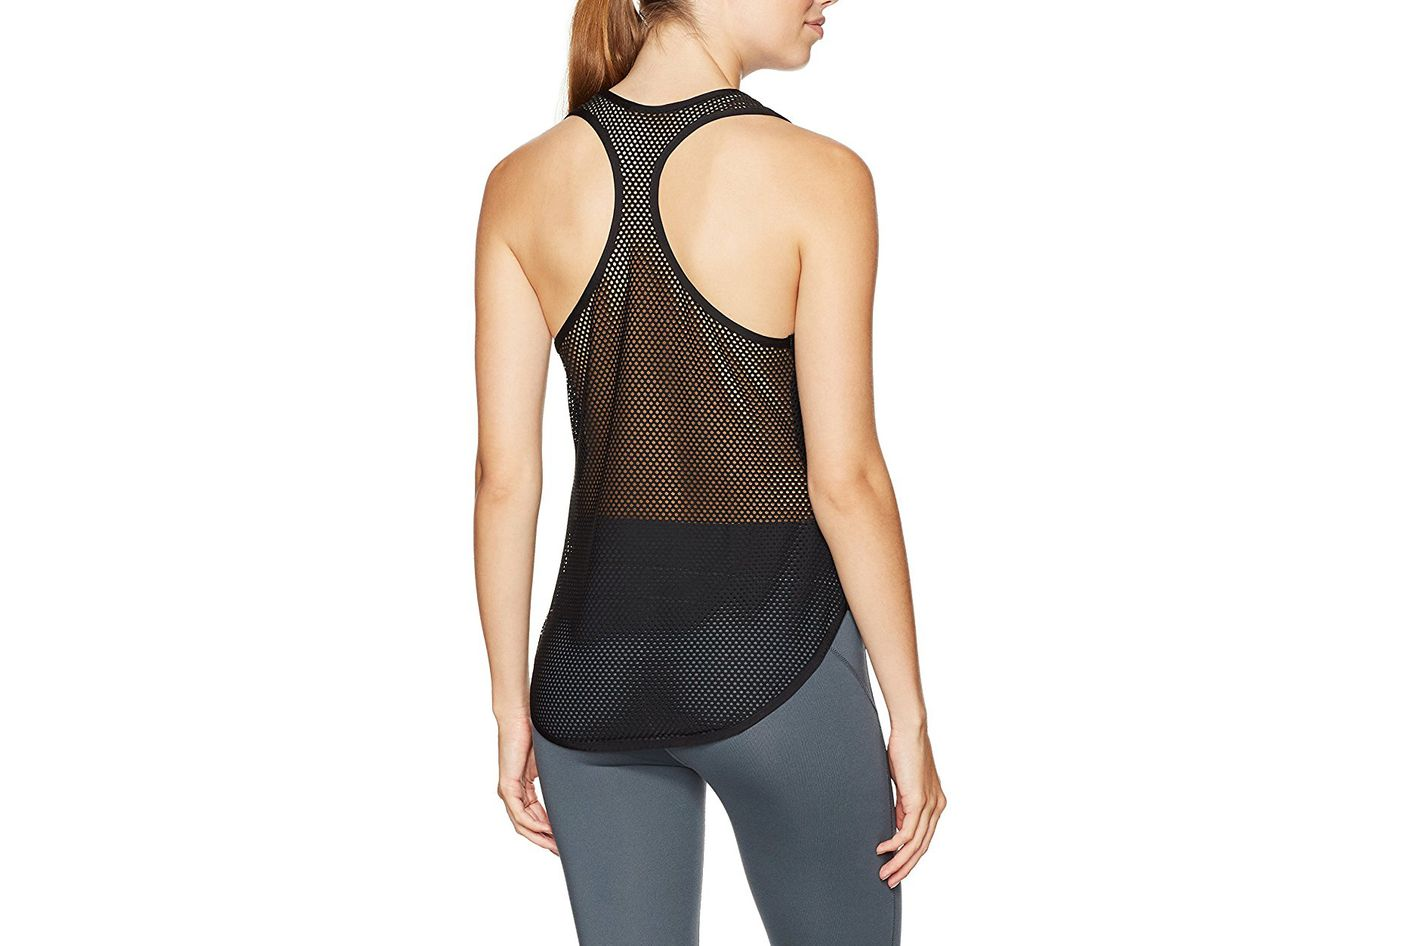 Discussion on this topic: 10 Alternatives to Lululemon, 10-alternatives-to-lululemon/